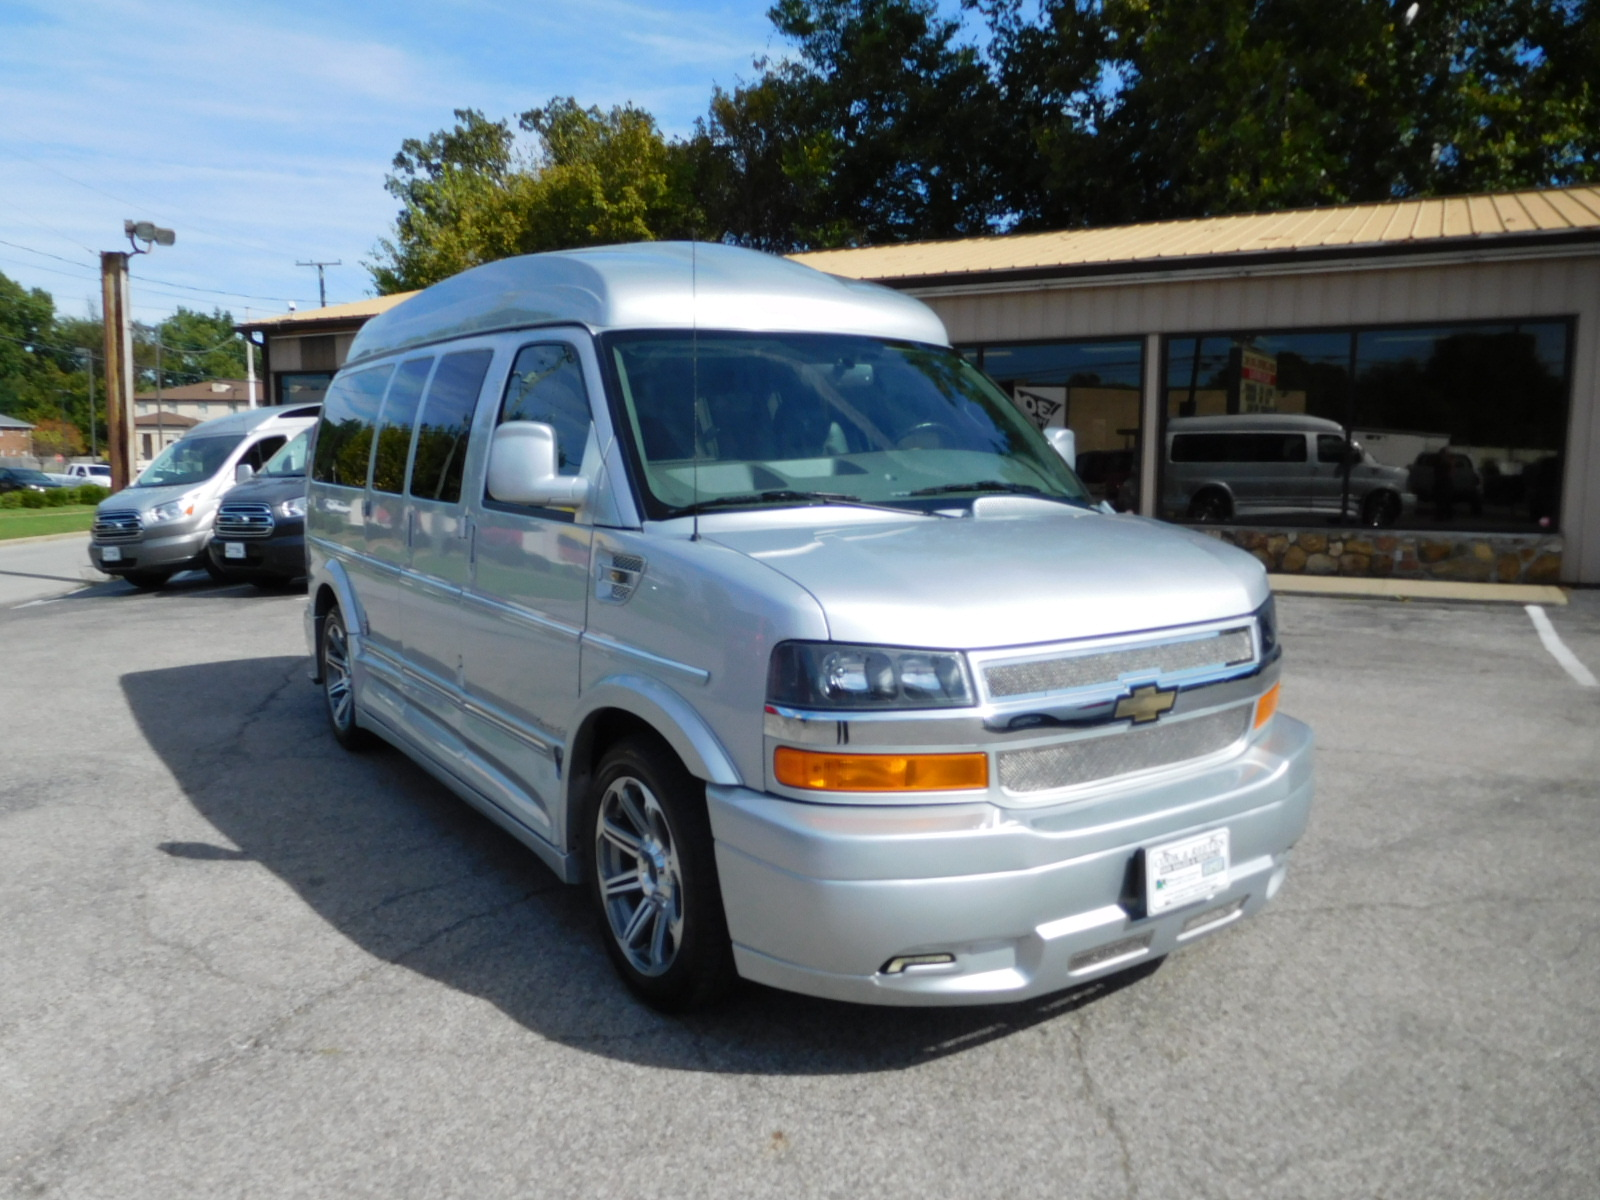 17 CHEVY EXPRESS EXPLORER LIMITED SE